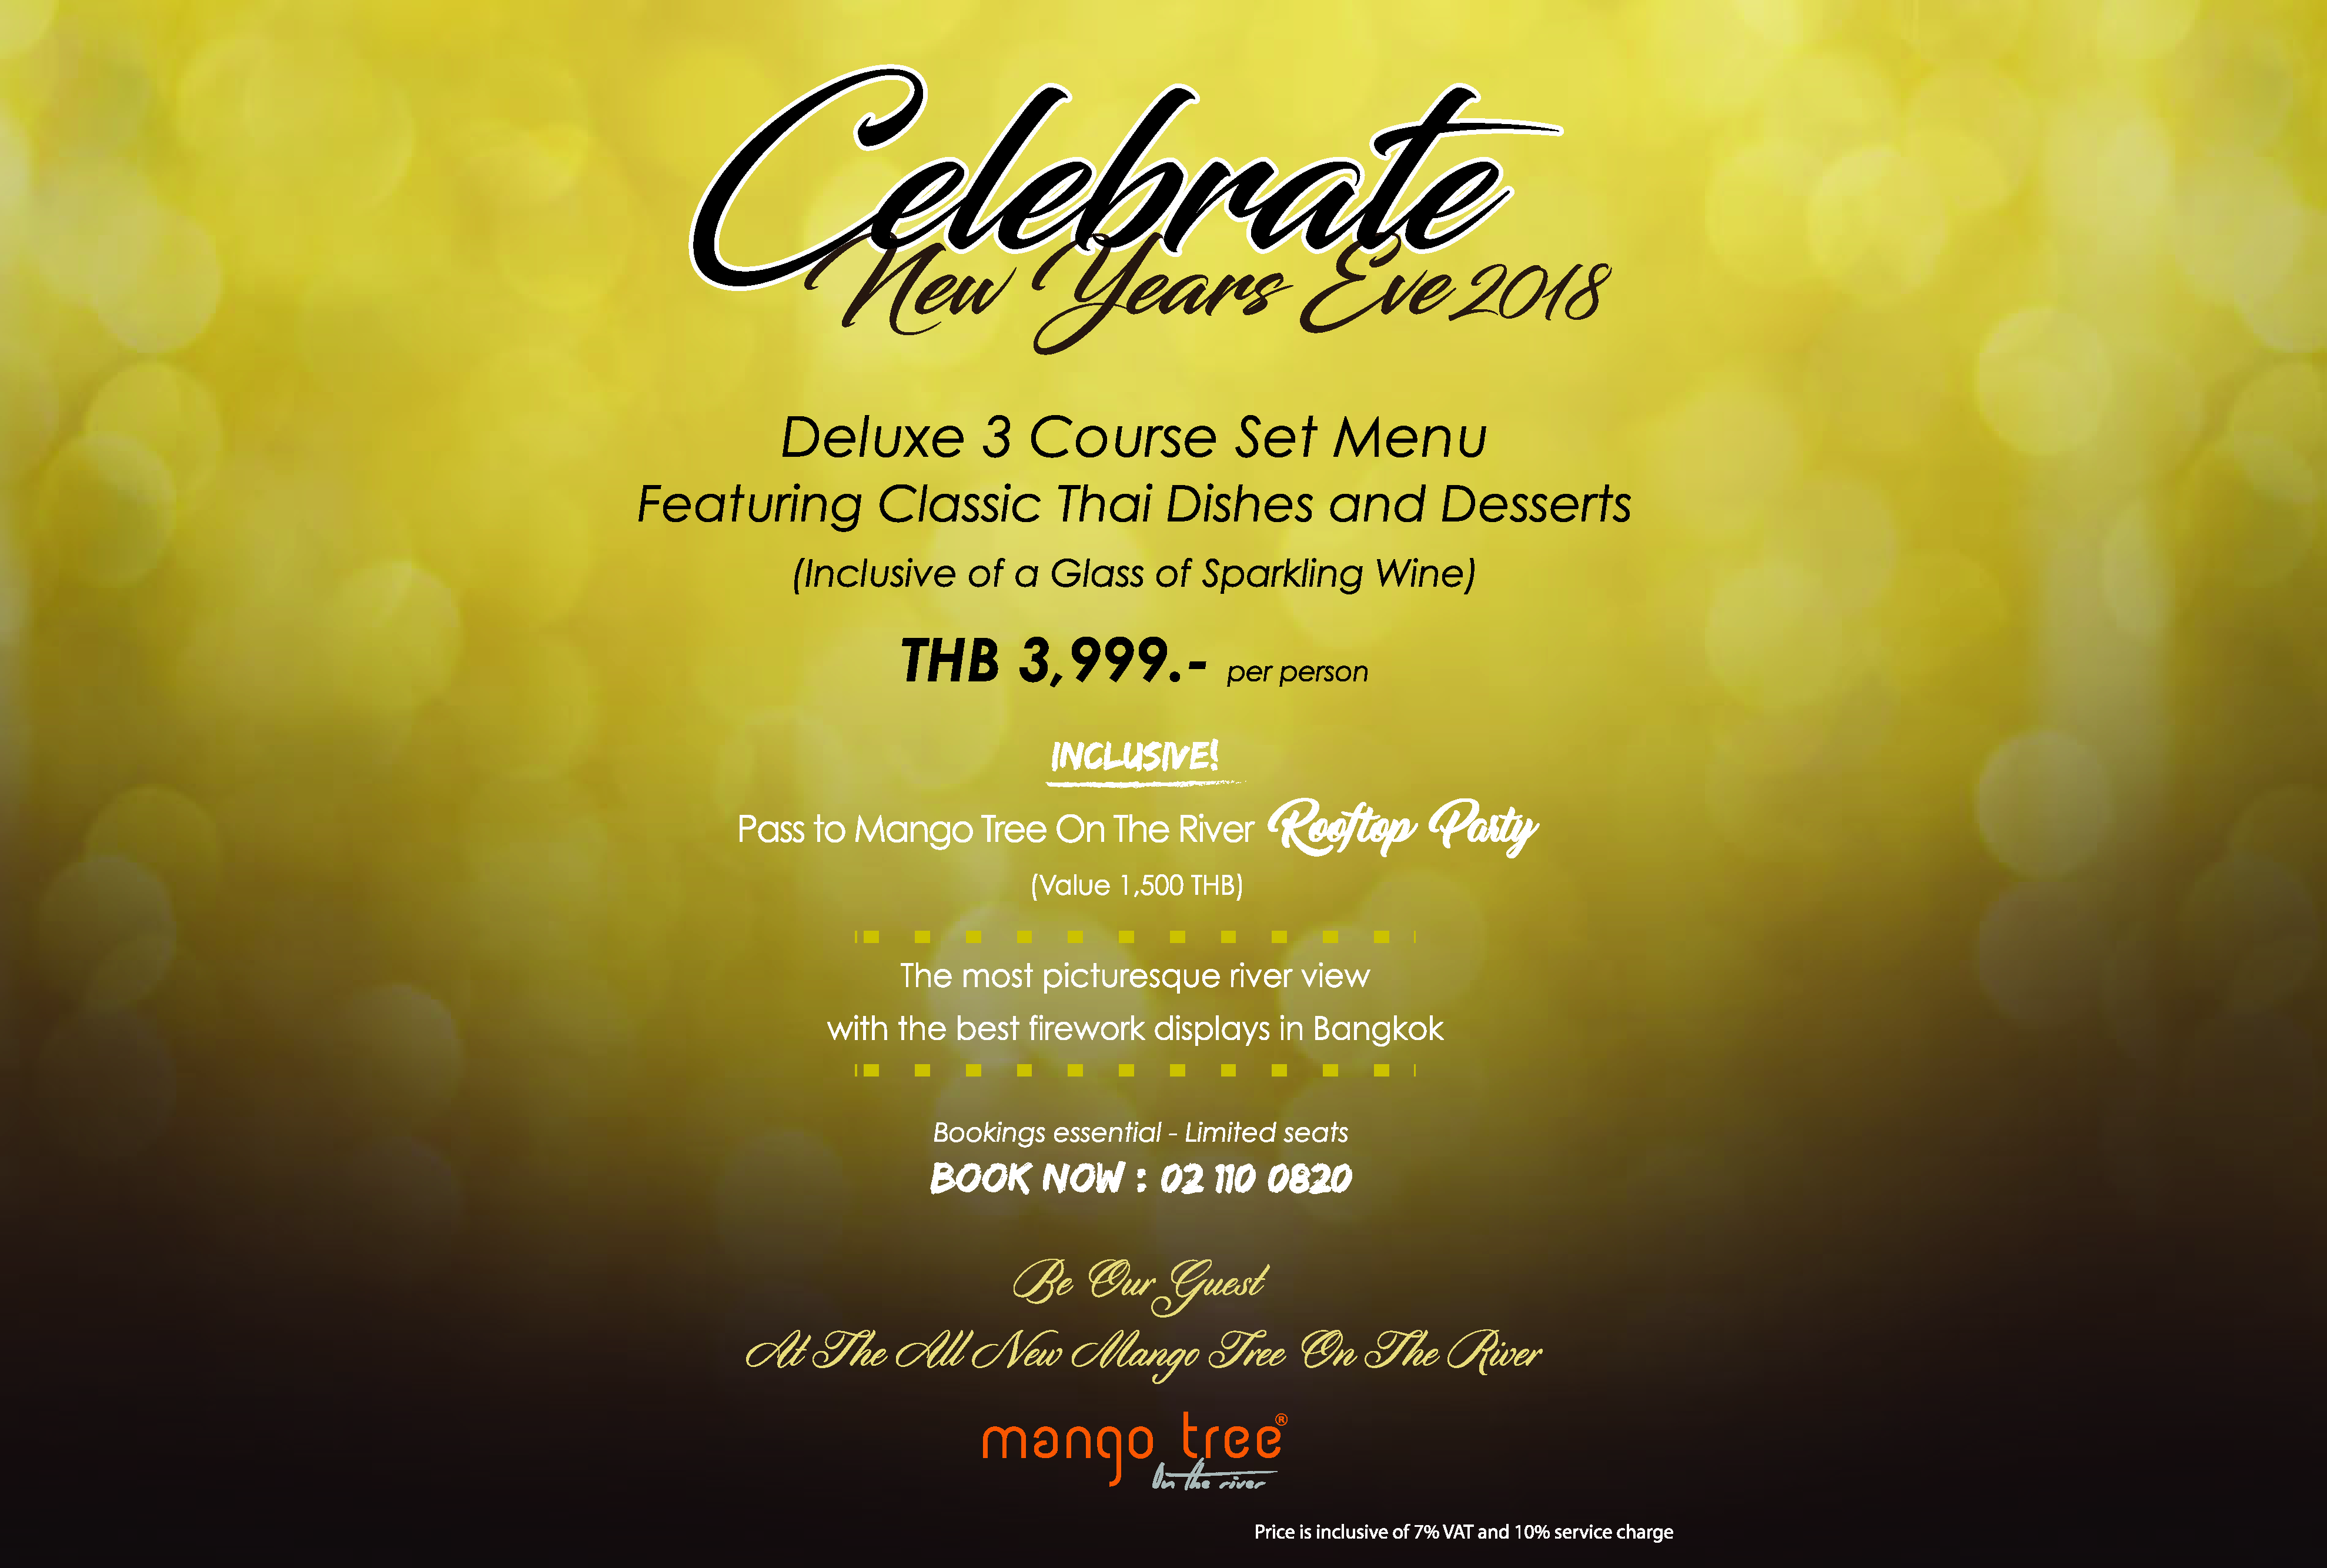 Let's Countdown at Mango tree on the River.